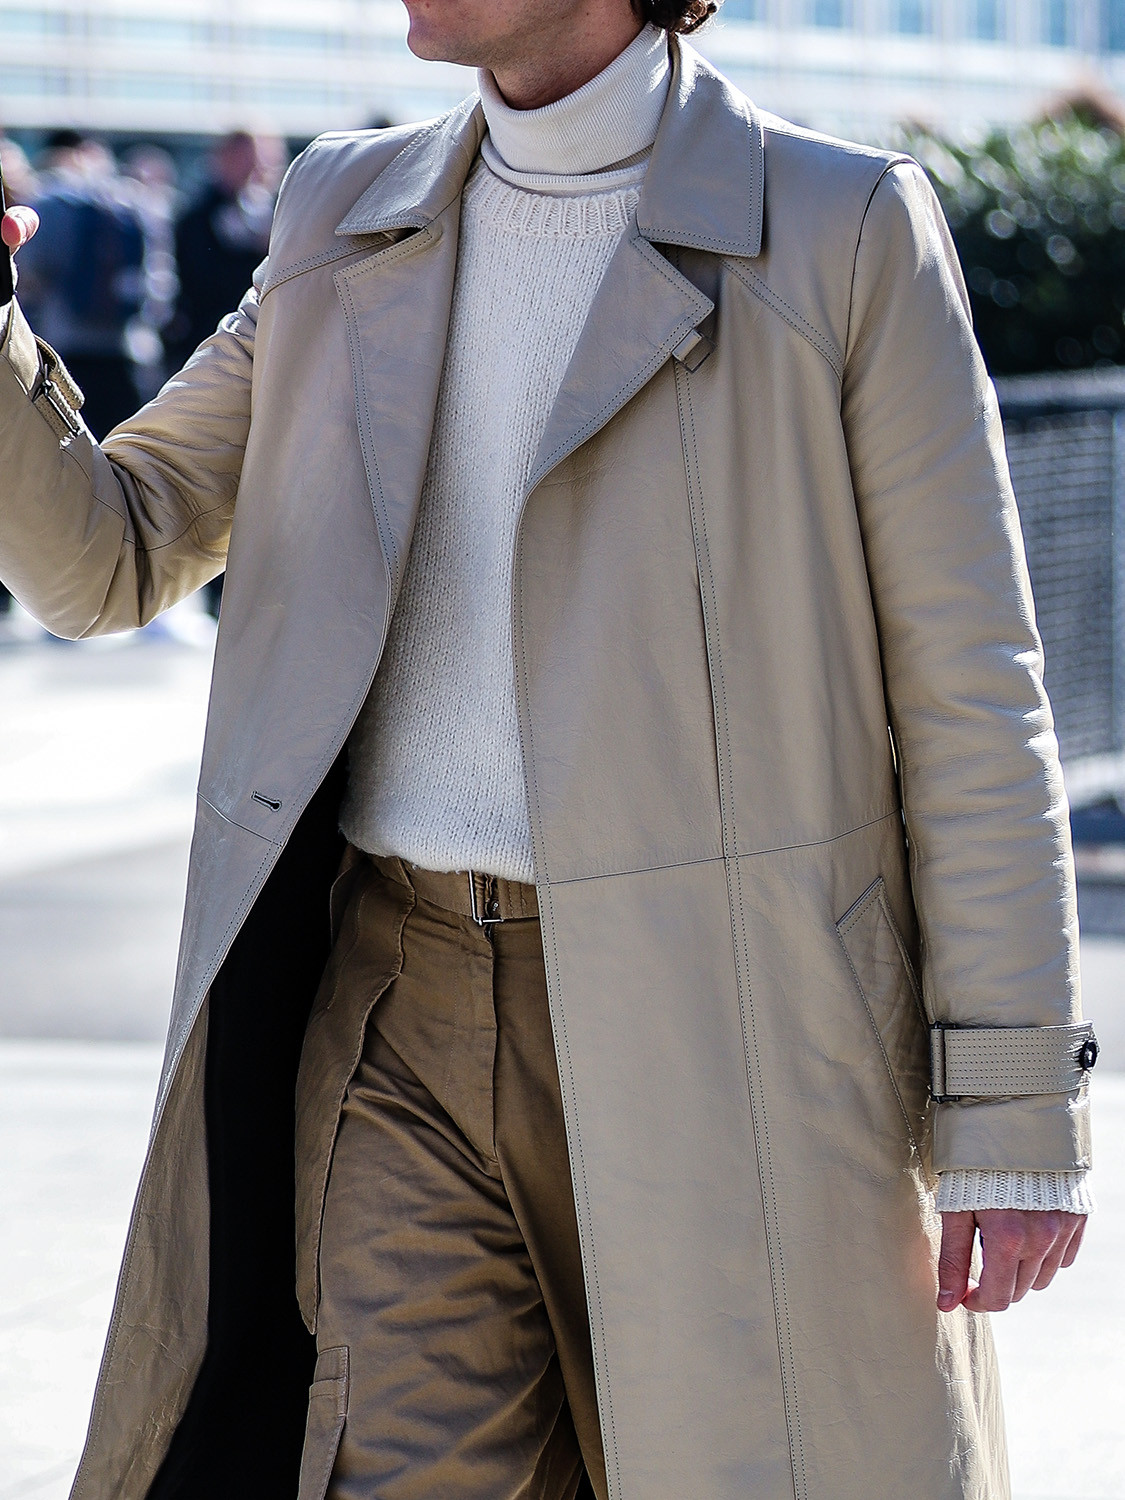 Men's outfit idea for 2021 with white plain crew neck knitted jumper, grey lightweight rollneck jumper, neutral chinos, white trainers. Suitable for autumn and winter.